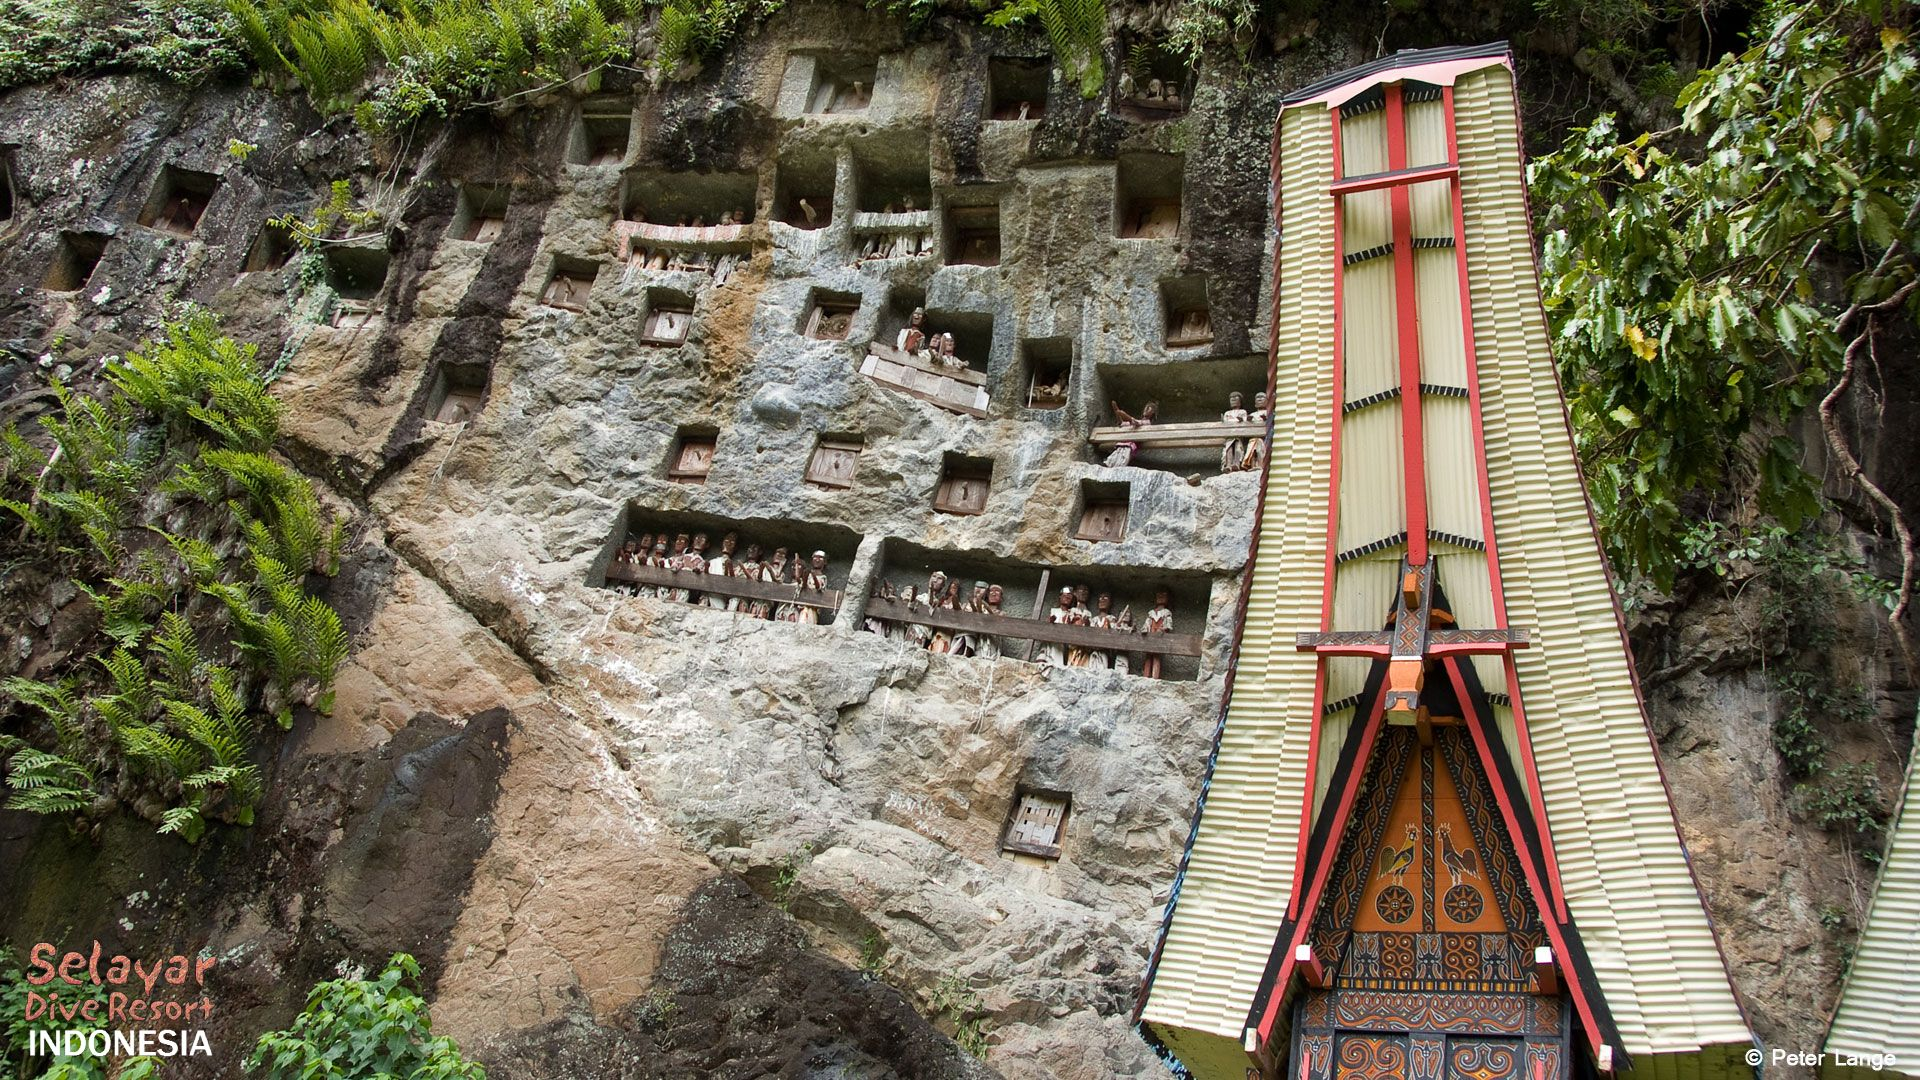 indonesian value and ideology of toraja Indonesia money and currency guide 5 out of 5 ( 83 ) indonesia currency is called rupiah (idr symbol rp), the largest banknote is rp 100,000, which may only about us$10 but is still inconveniently large for most purchases.